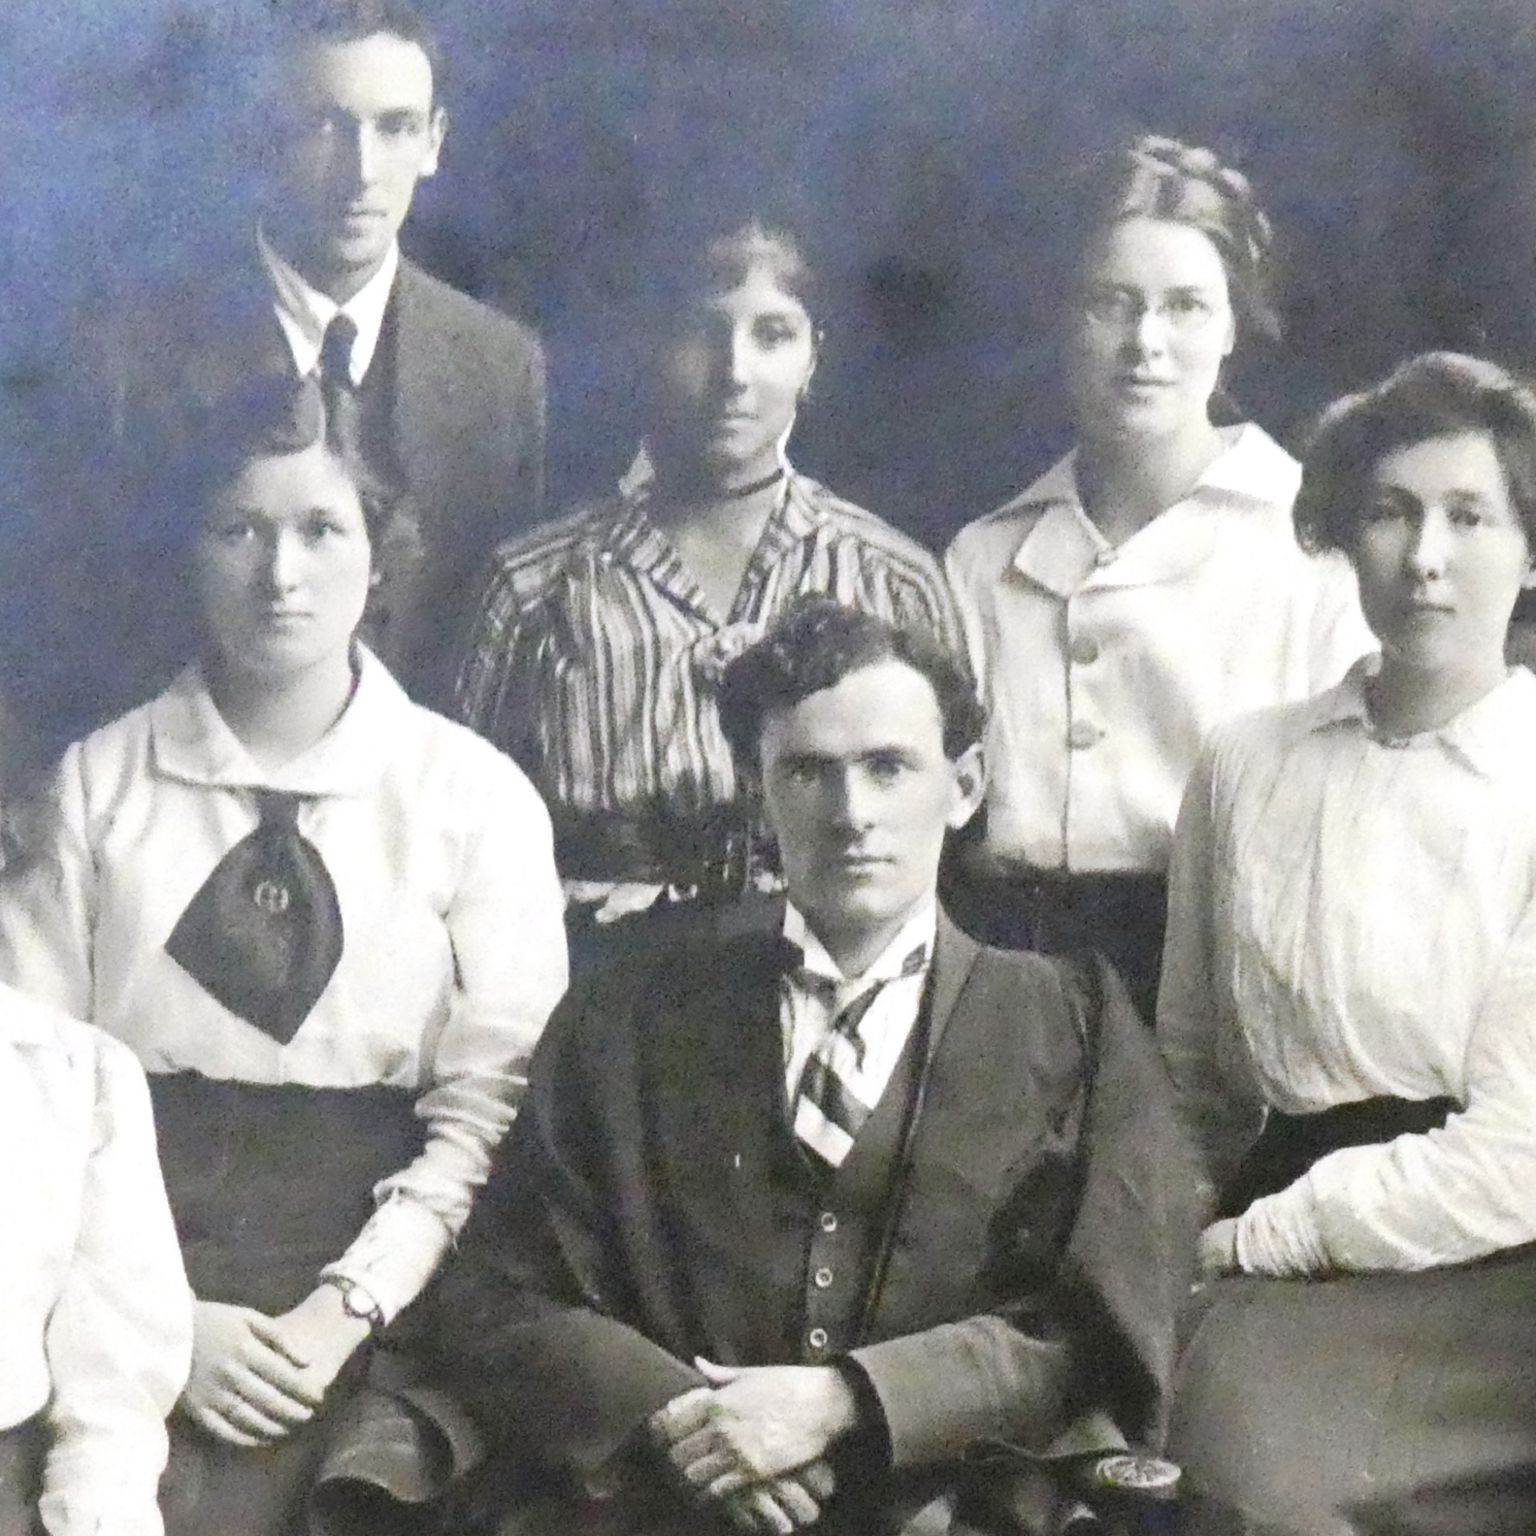 Students at the University College of Wales